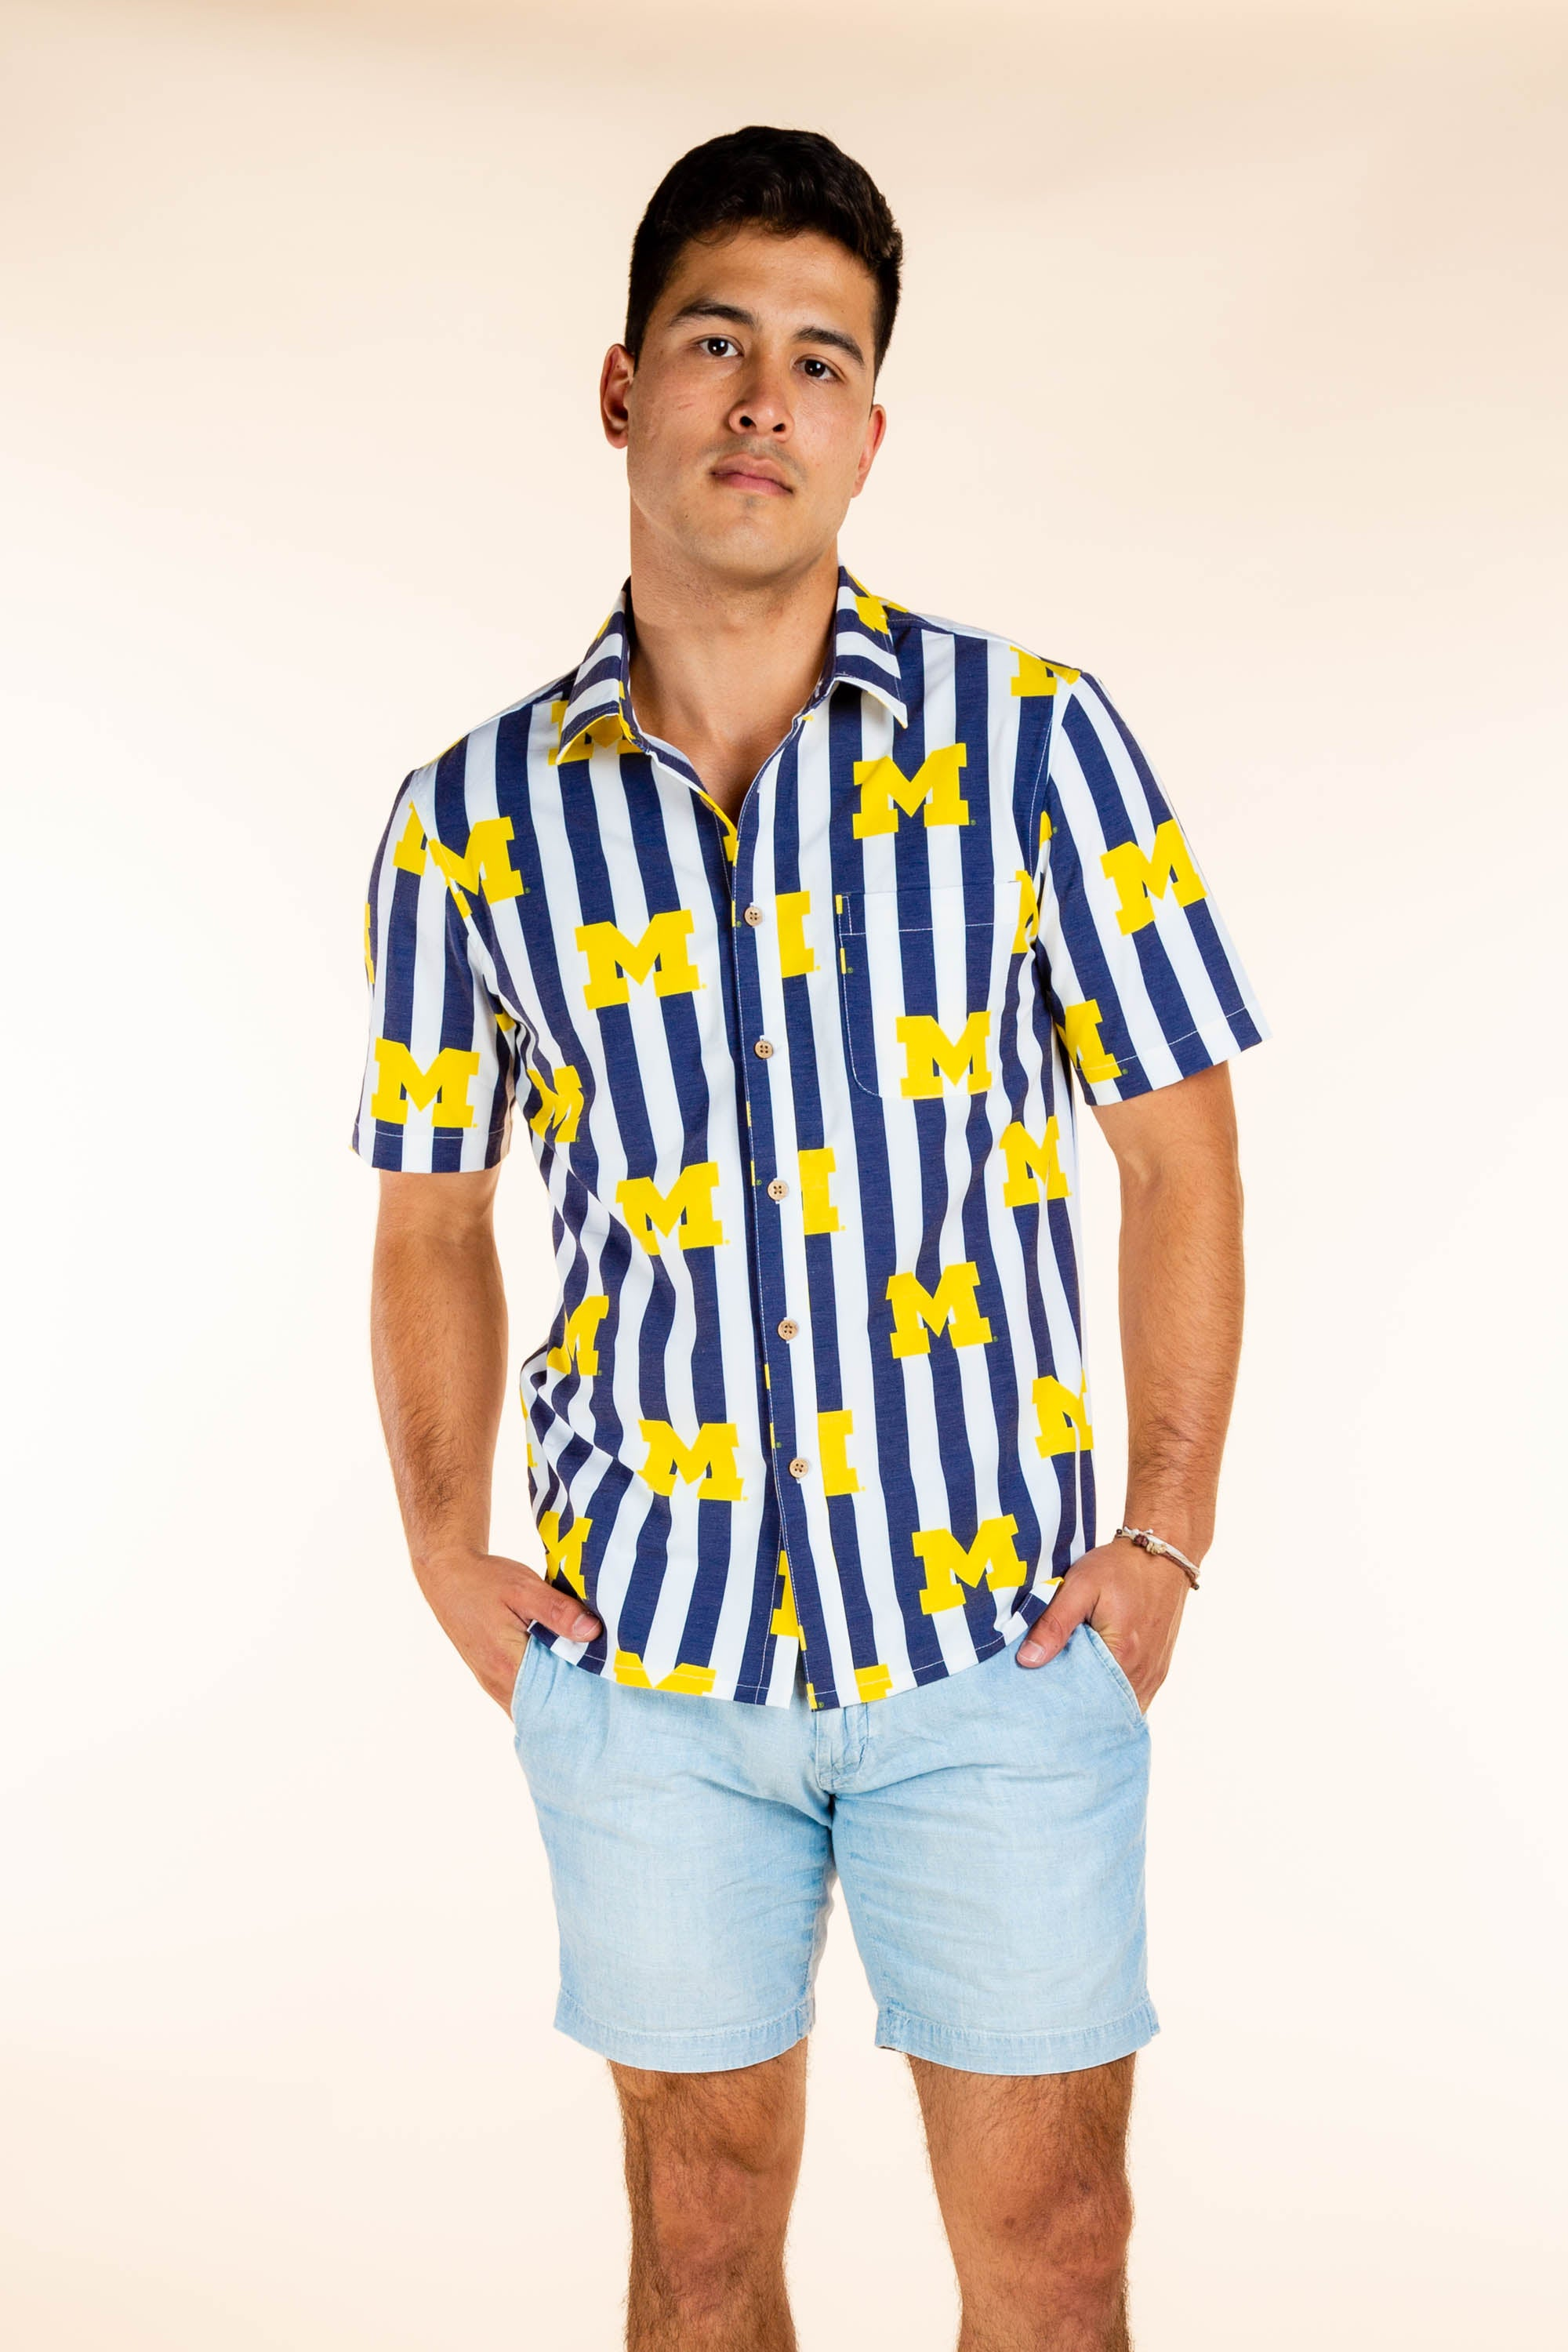 Men's Striped University of Michigan Party Shirt